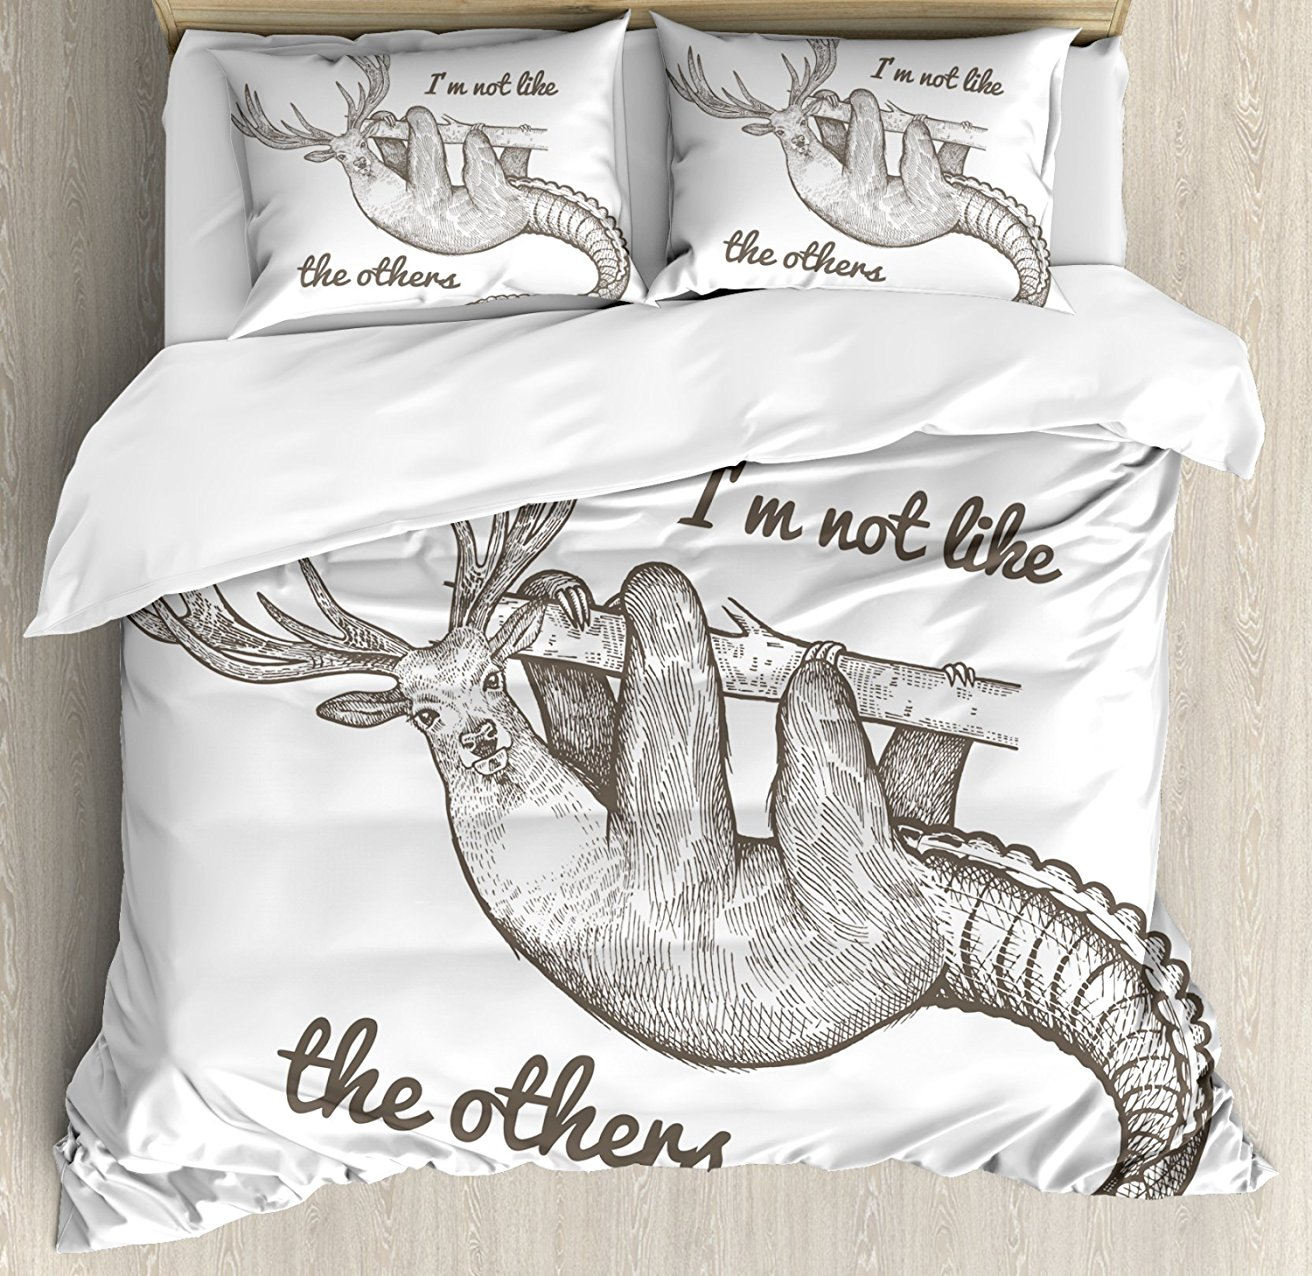 Sloth Duvet Cover Set Unusual Fantastic Animal Quote Im Not Like The Others Inspirational Vintage 4 Piece Bedding Set